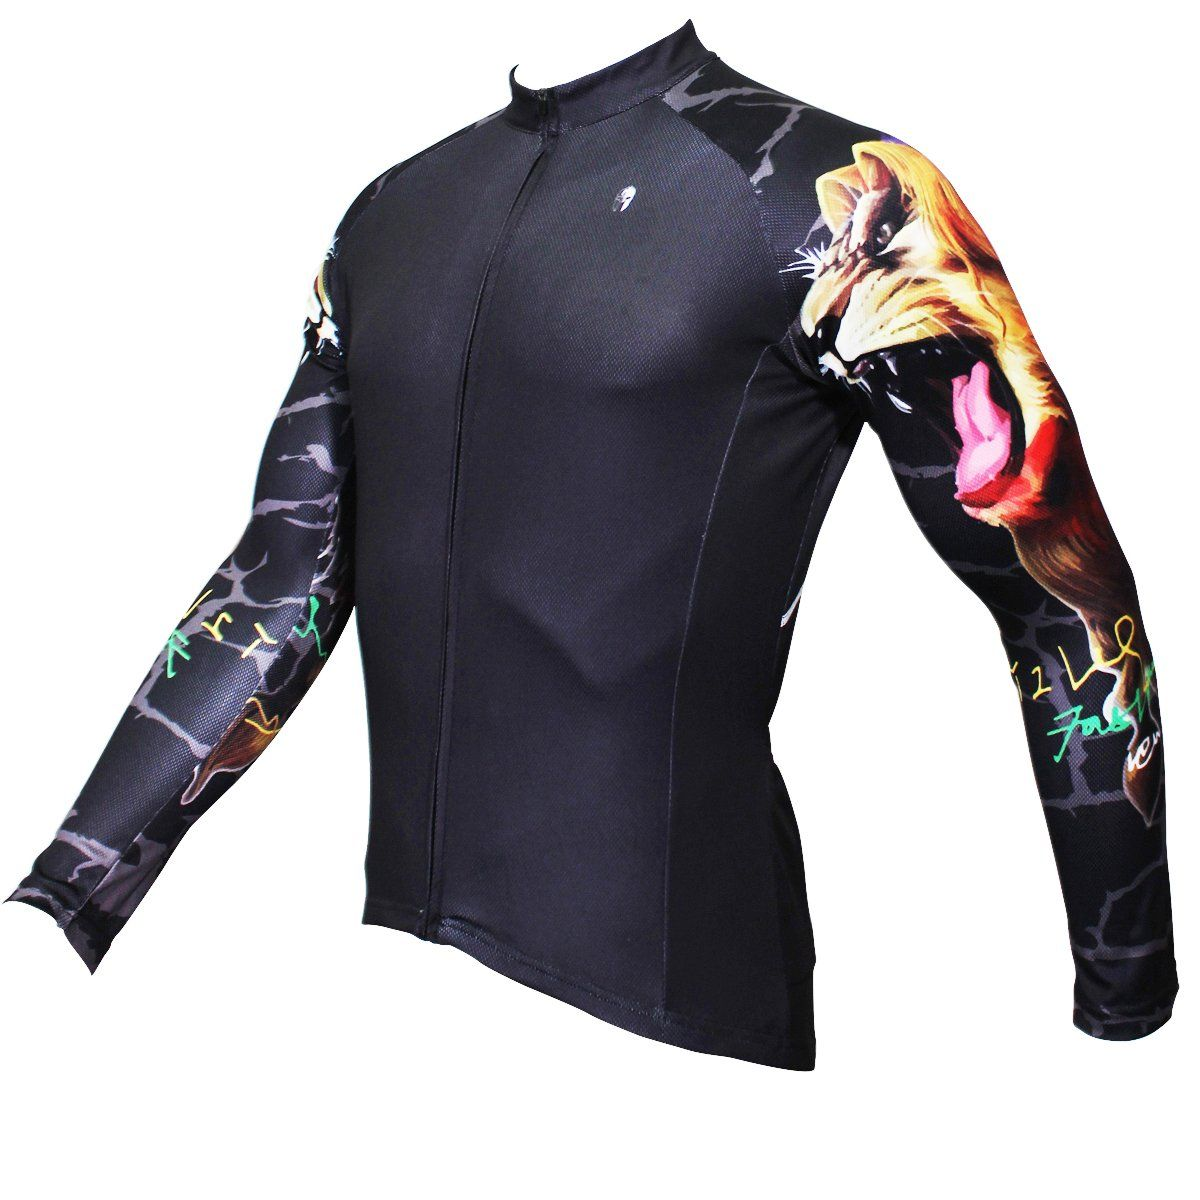 ILPALADINO Gipsy Lion Cool Graphic Arm Print Men s Cycling Long-sleeve  Black Jerseys - Spring Summer Exercise Wear Bicycling Pro Cycle Clothing  Racing ... 679a66f37